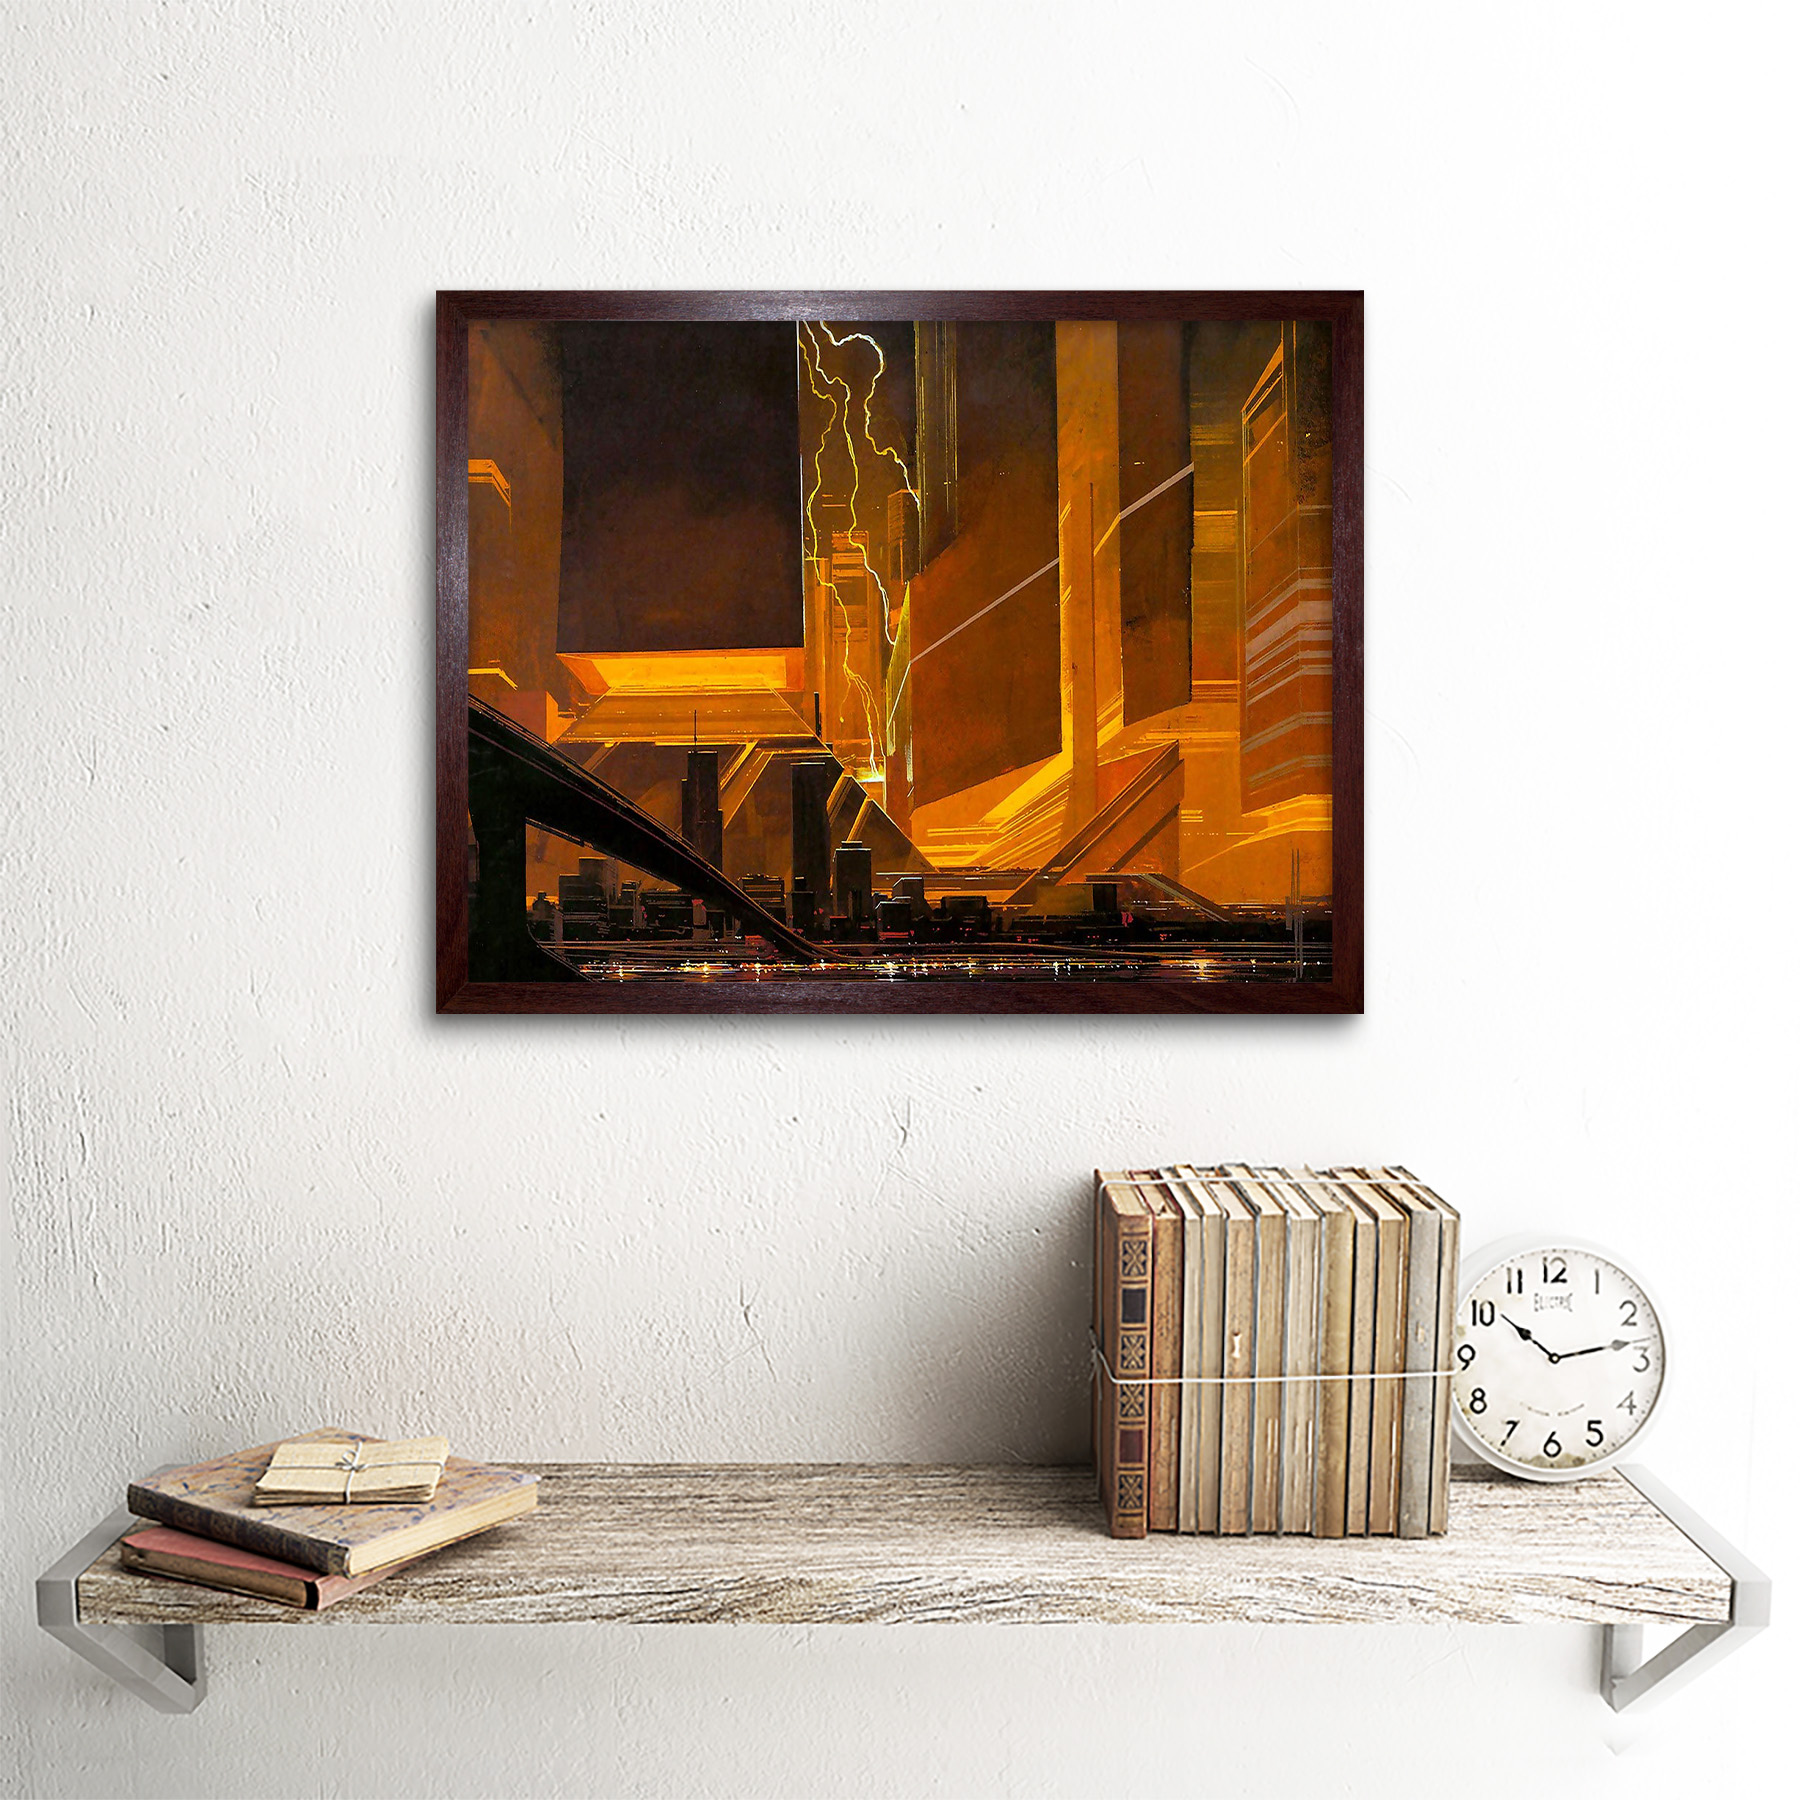 Film Movie 1980 Syd Mead Bladerunner Concepts Plakat Drucken Framed Art Print